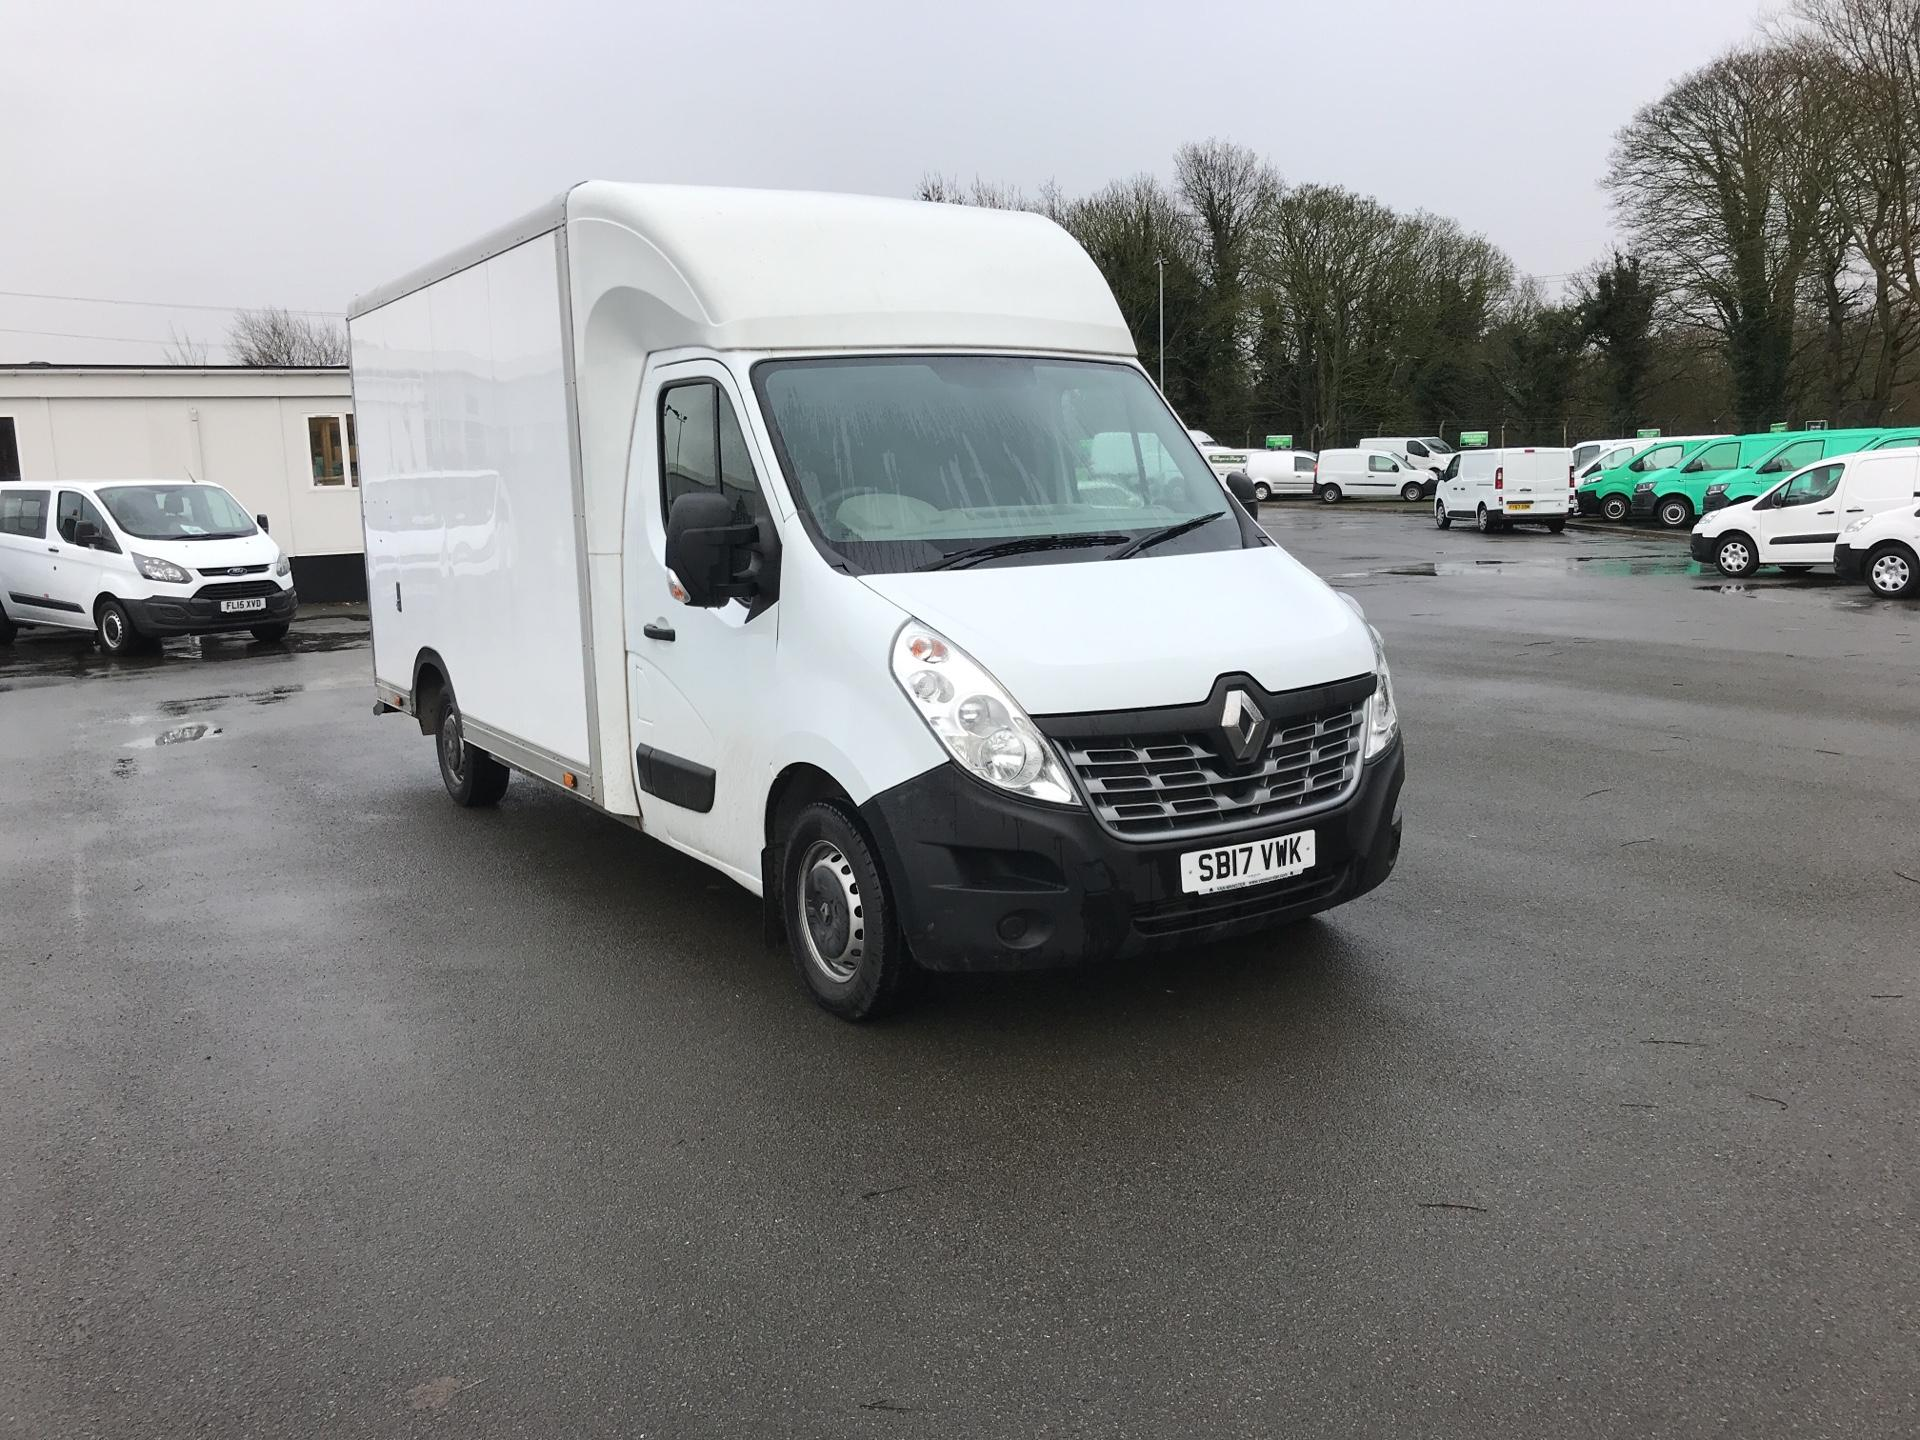 2017 Renault Master LL35DCI 130 BUSINESS LOW ROOF LUTON LOLOADER EURO 6   *VALUE RANGE VEHICLE - CONDITION REFLECTED IN PRICE*  (SB17VWK)